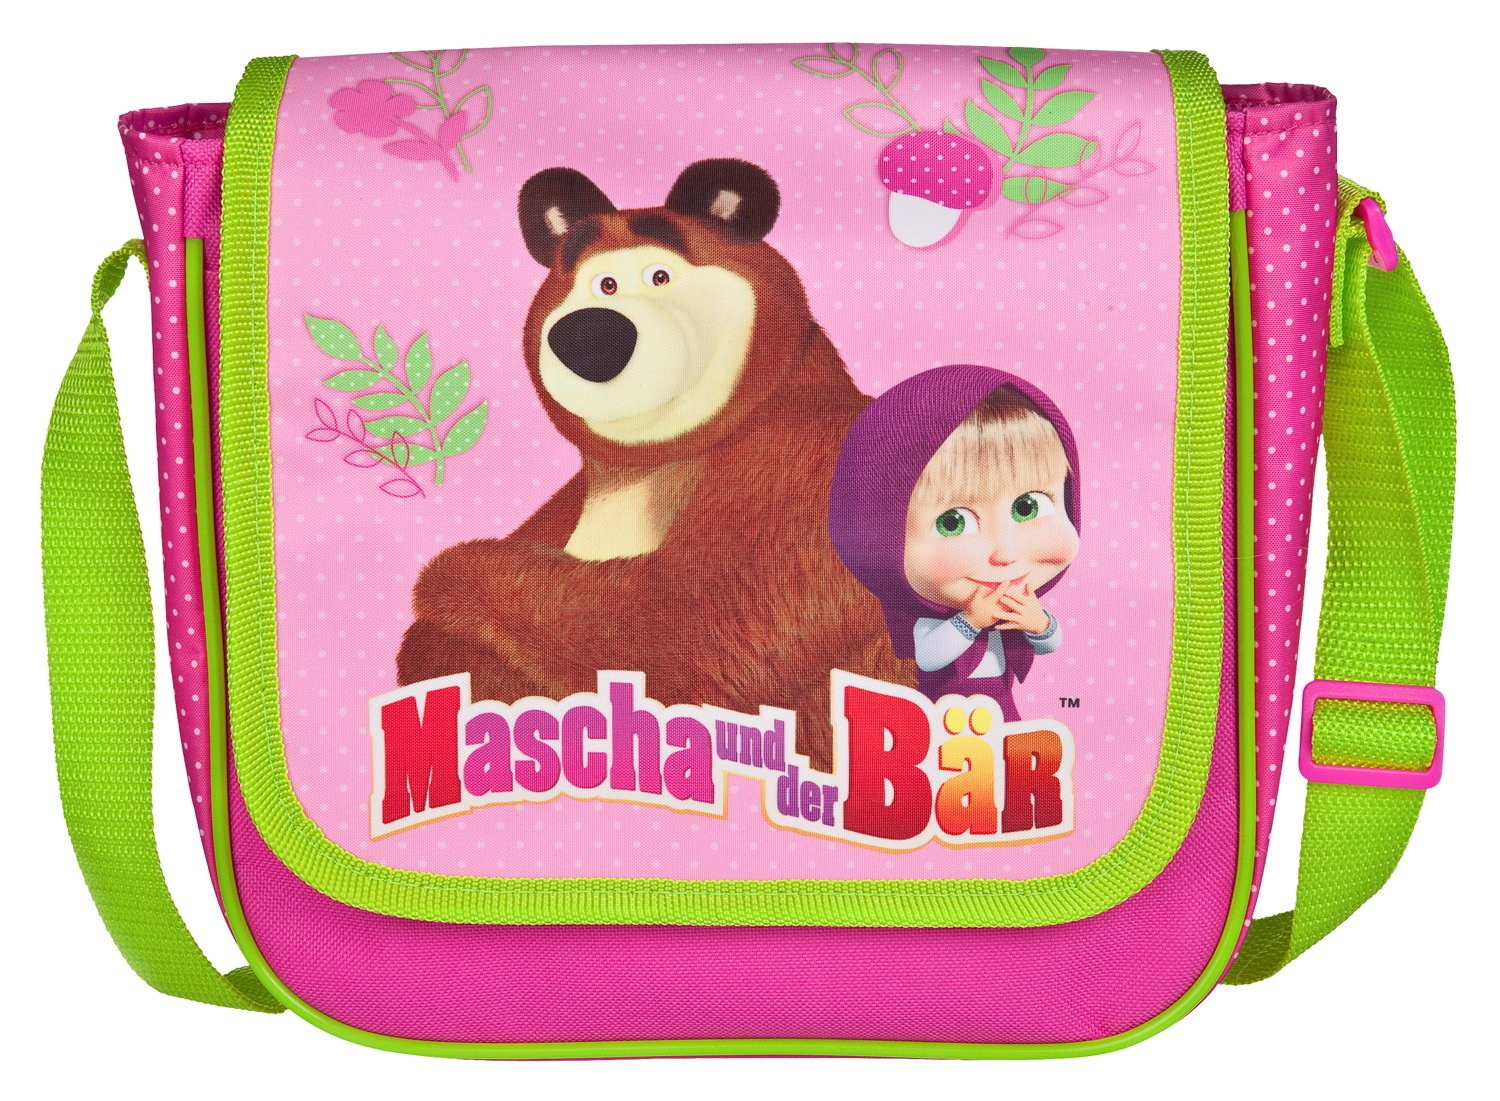 Undercover School Bag, Mascha and the Bear pink (pink) - 10112532 MBCE8126